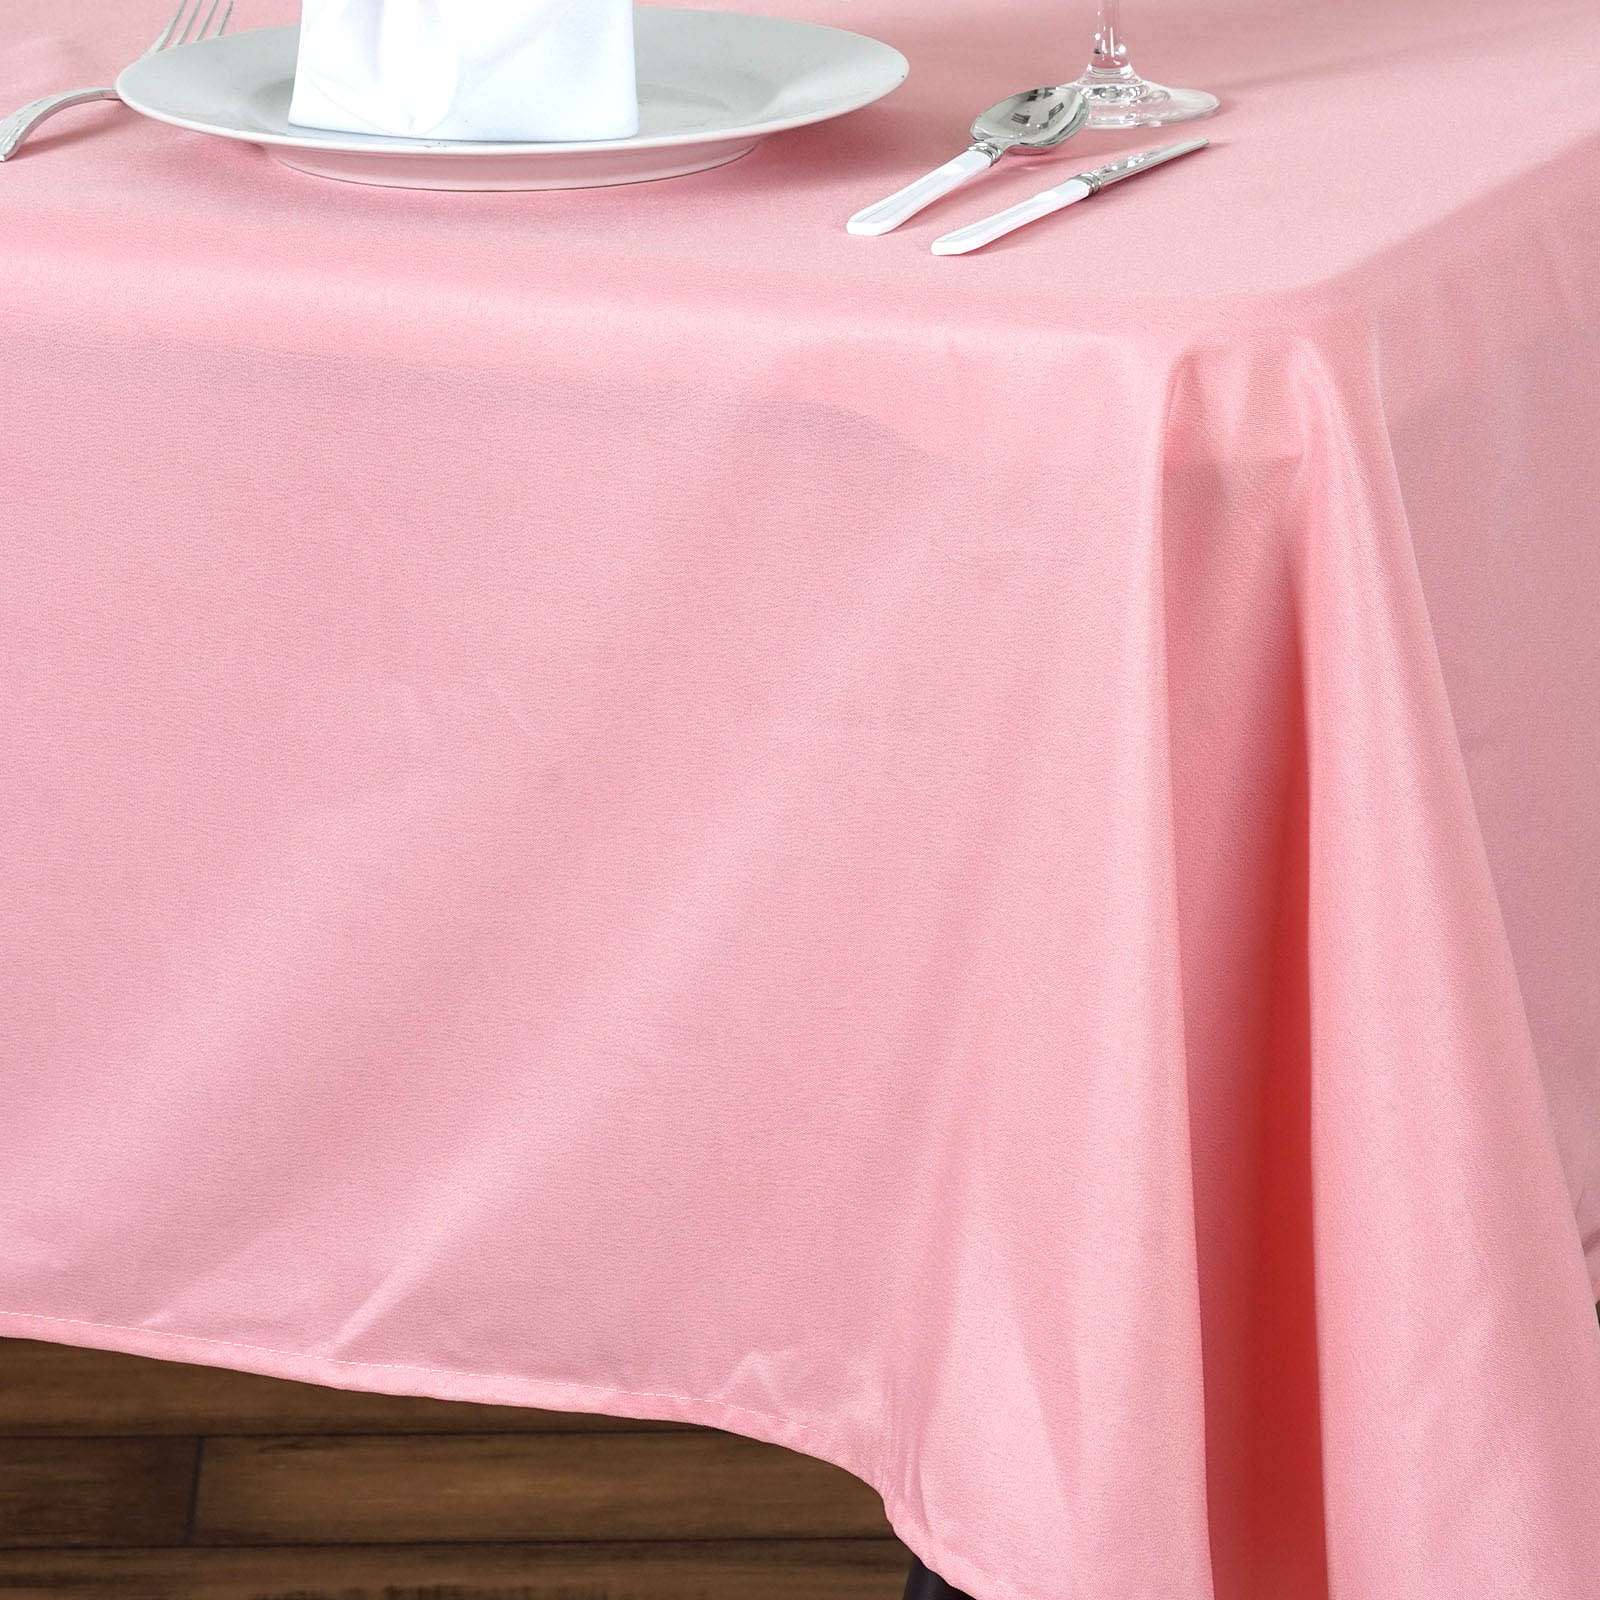 5pcs-60x102-034-Polyester-Rectangle-Tablecloths-For-Wedding-Party-Banquet-Events thumbnail 12